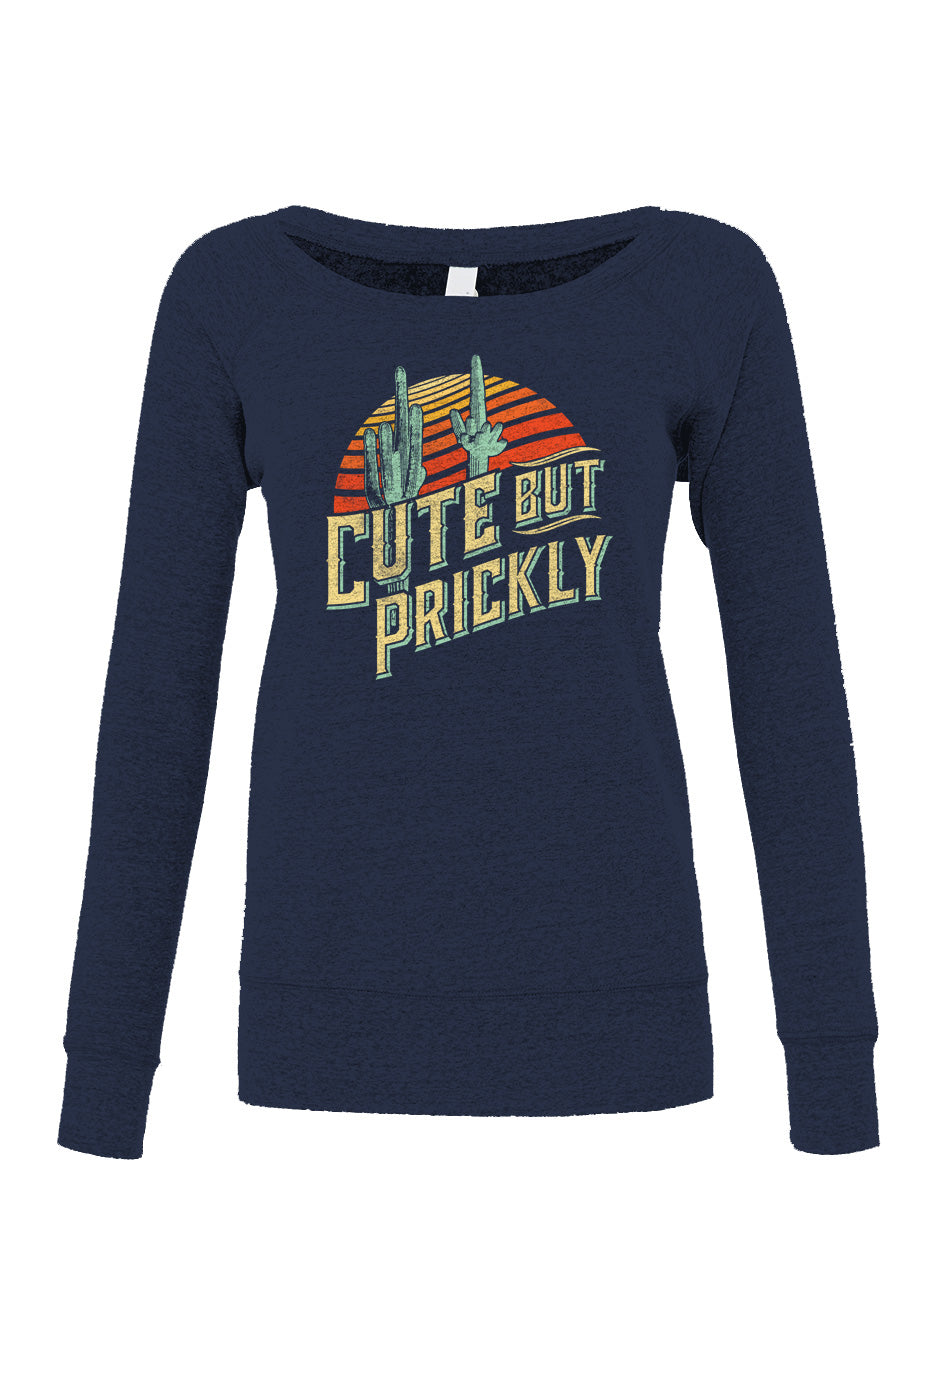 Women's Cute But Prickly Scoop Neck Fleece - Cactus Shirt